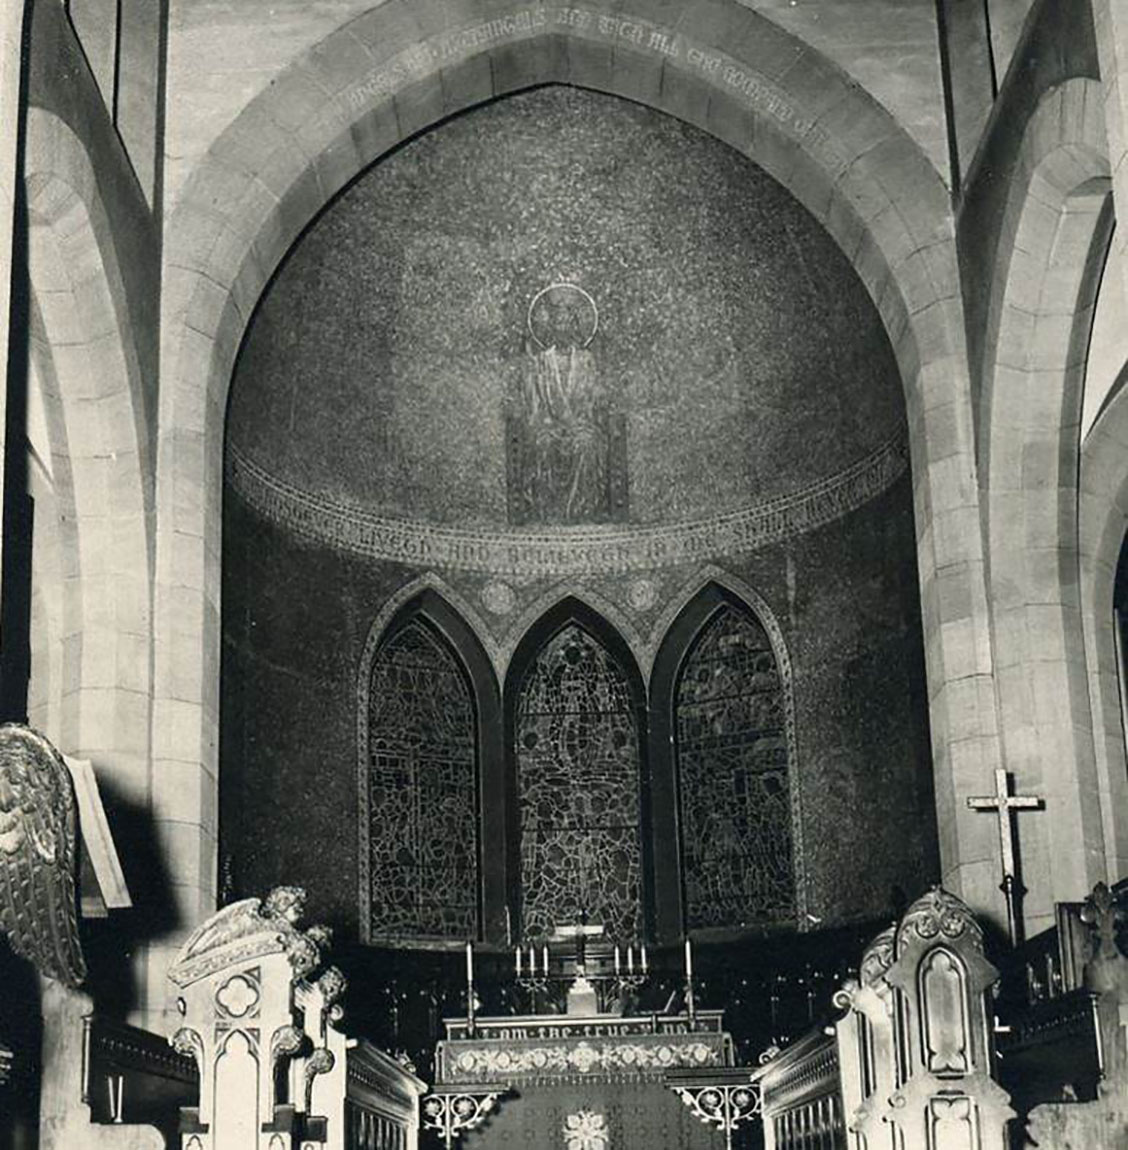 Historic photo showing the apse of Zion Episcopal Church in Wappinger Falls, New York